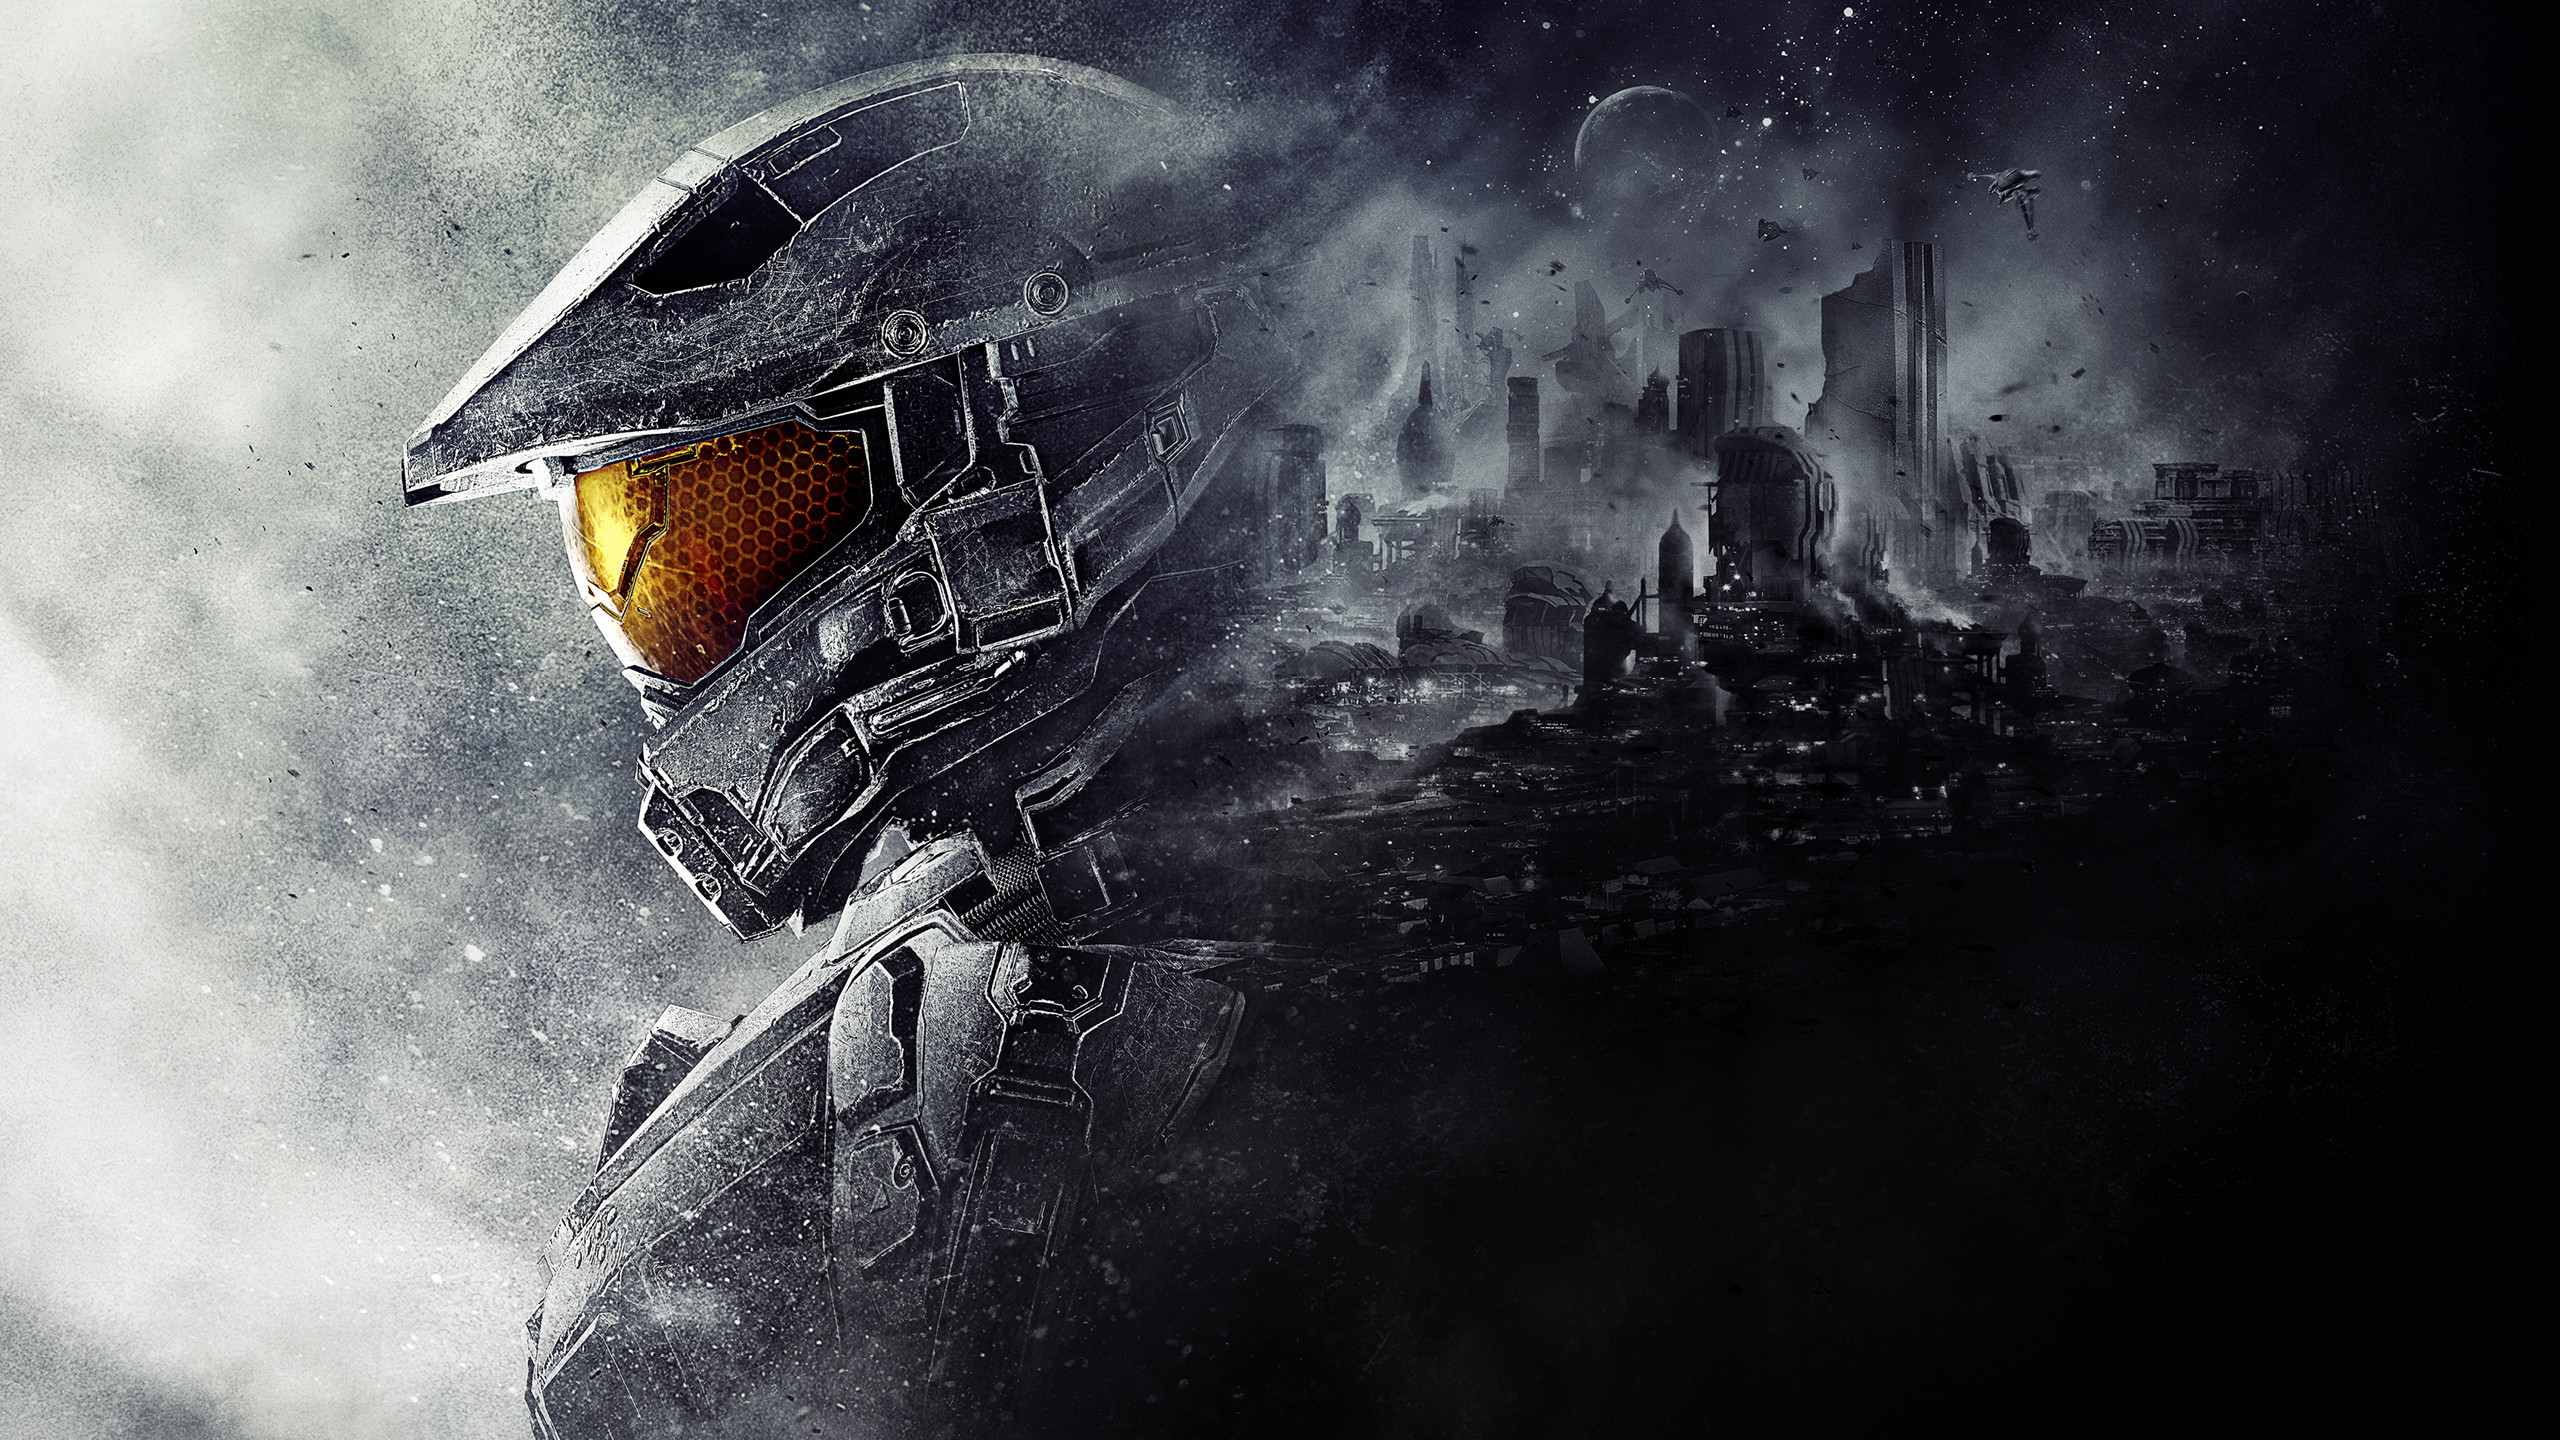 2560x1440 Master Chief Halo 5 Guardians Wallpapers | HD Wallpapers